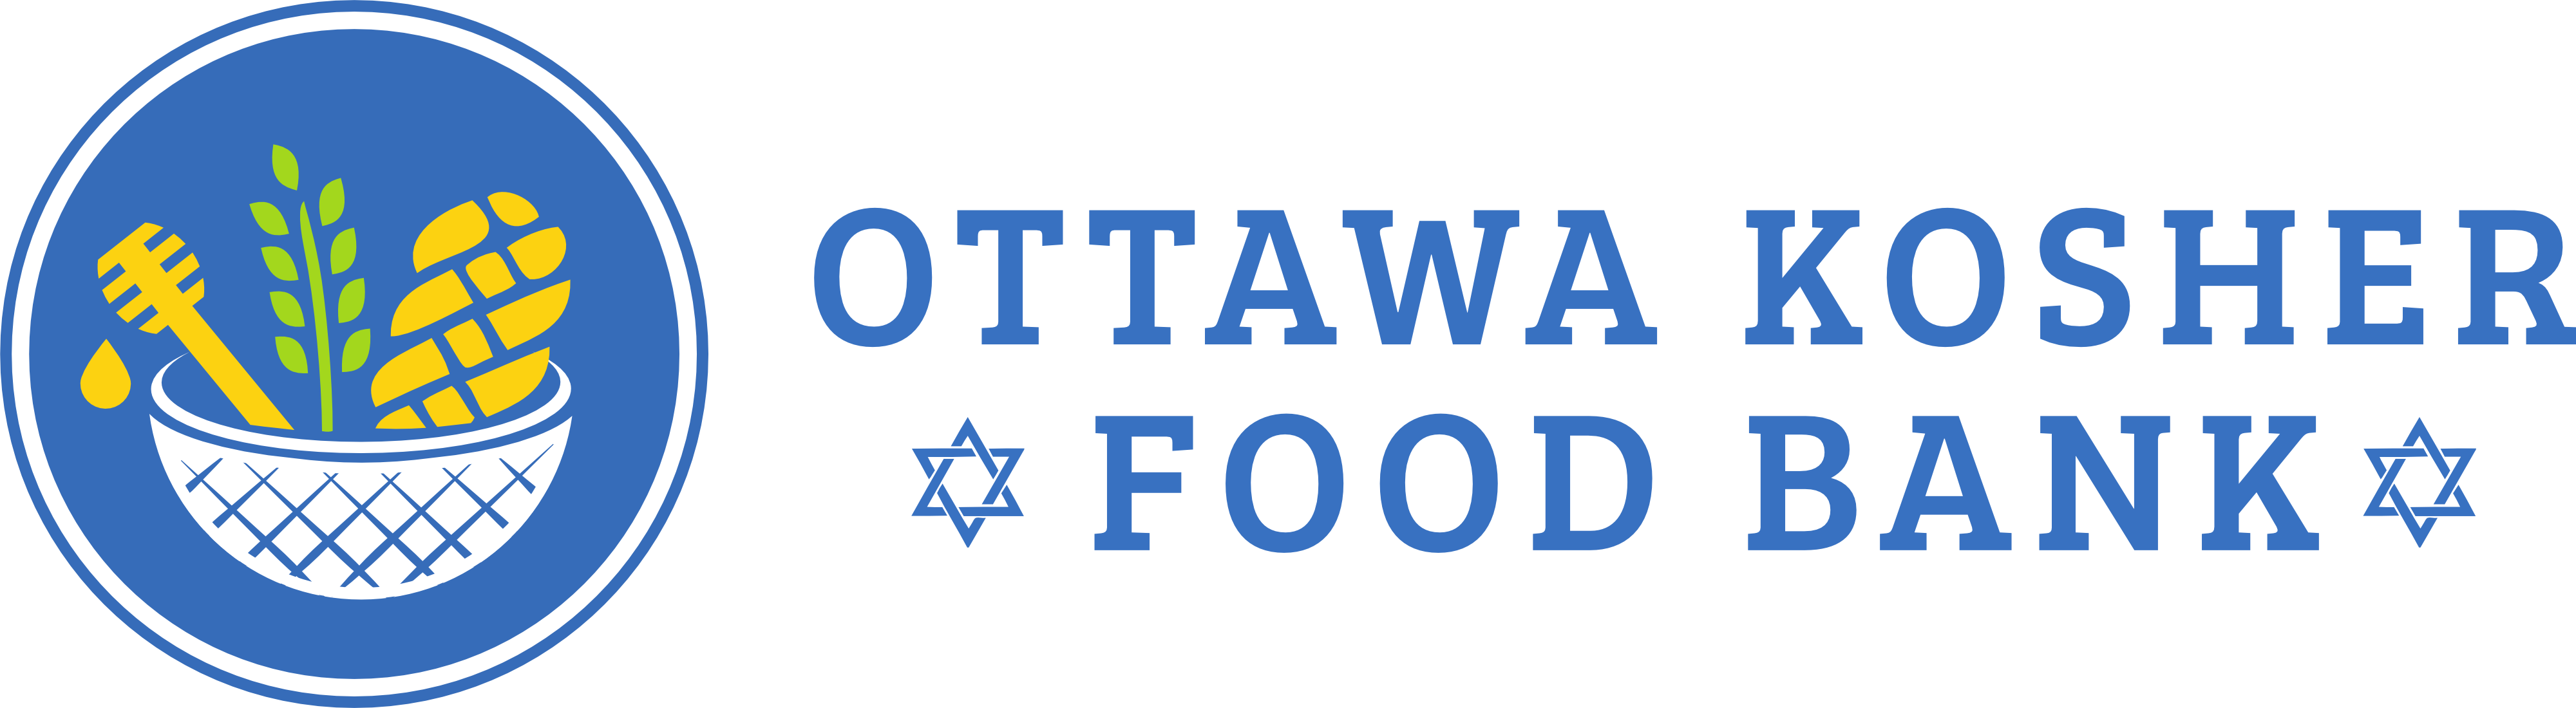 The Ottawa Kosher Food Bank